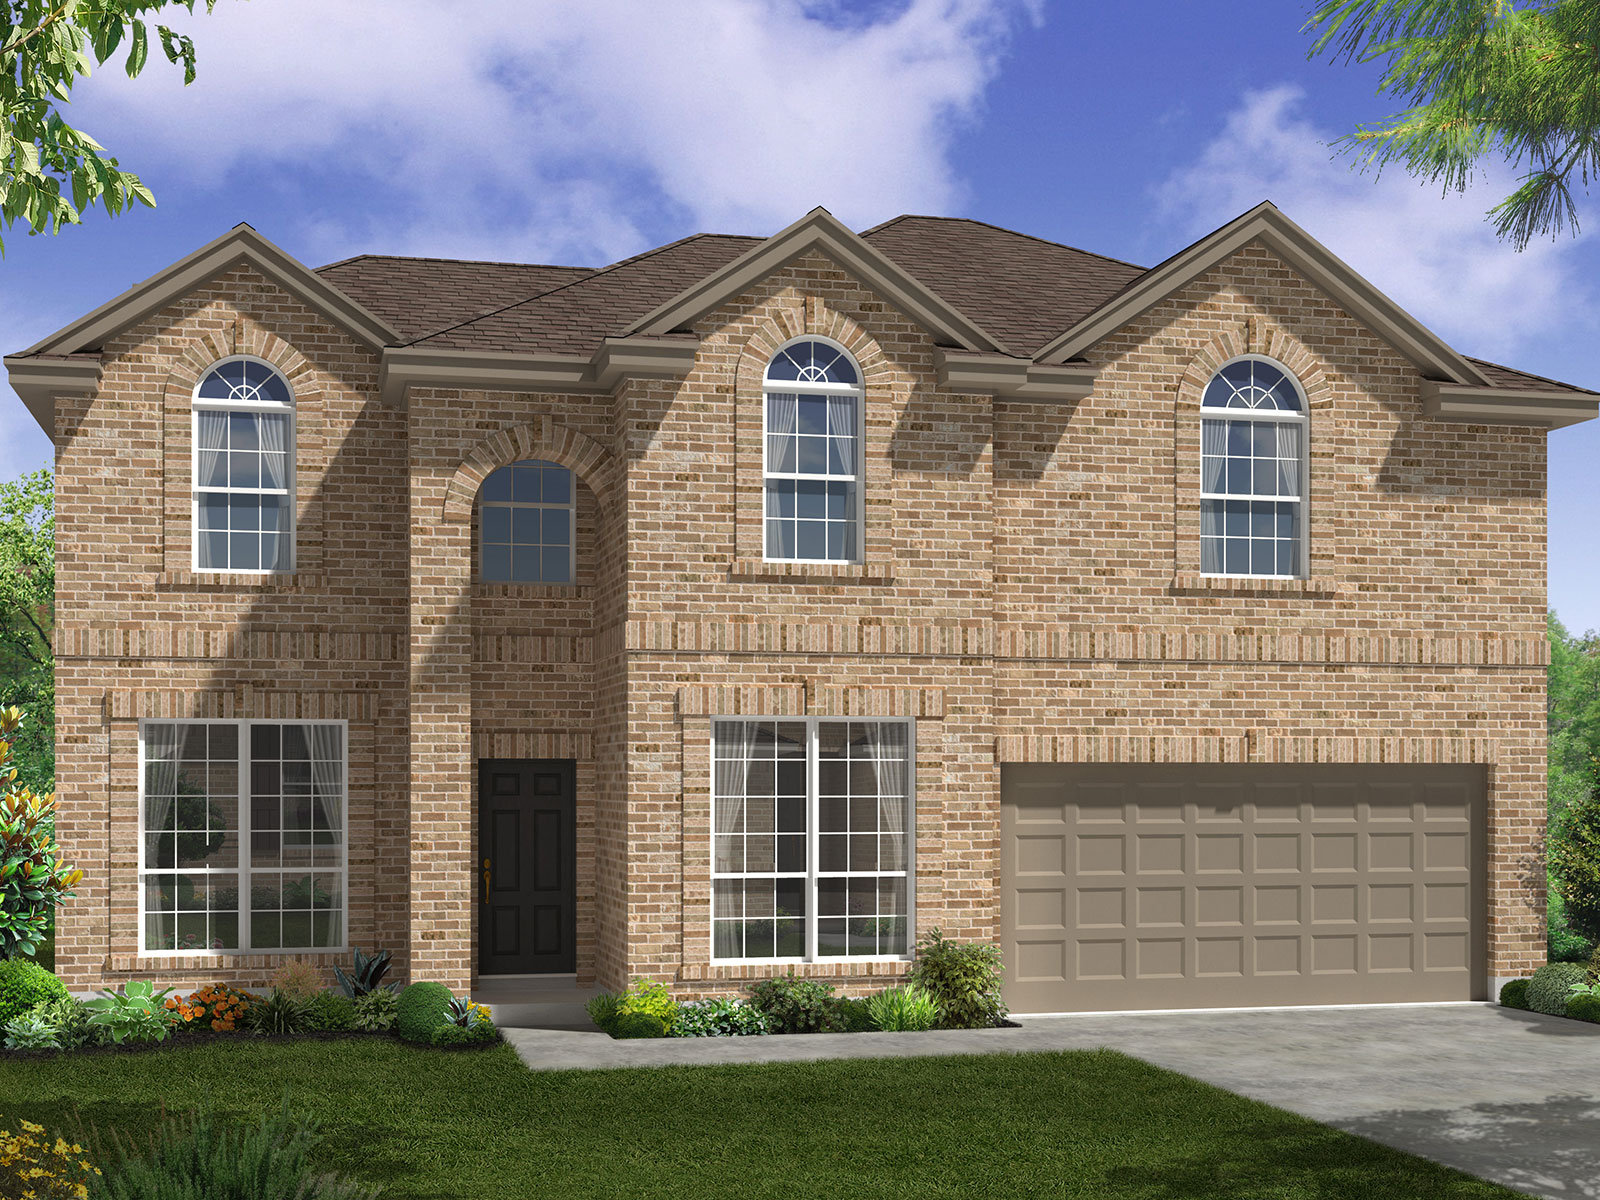 The Windrose 5570 Model 4br 3ba Homes For Sale In